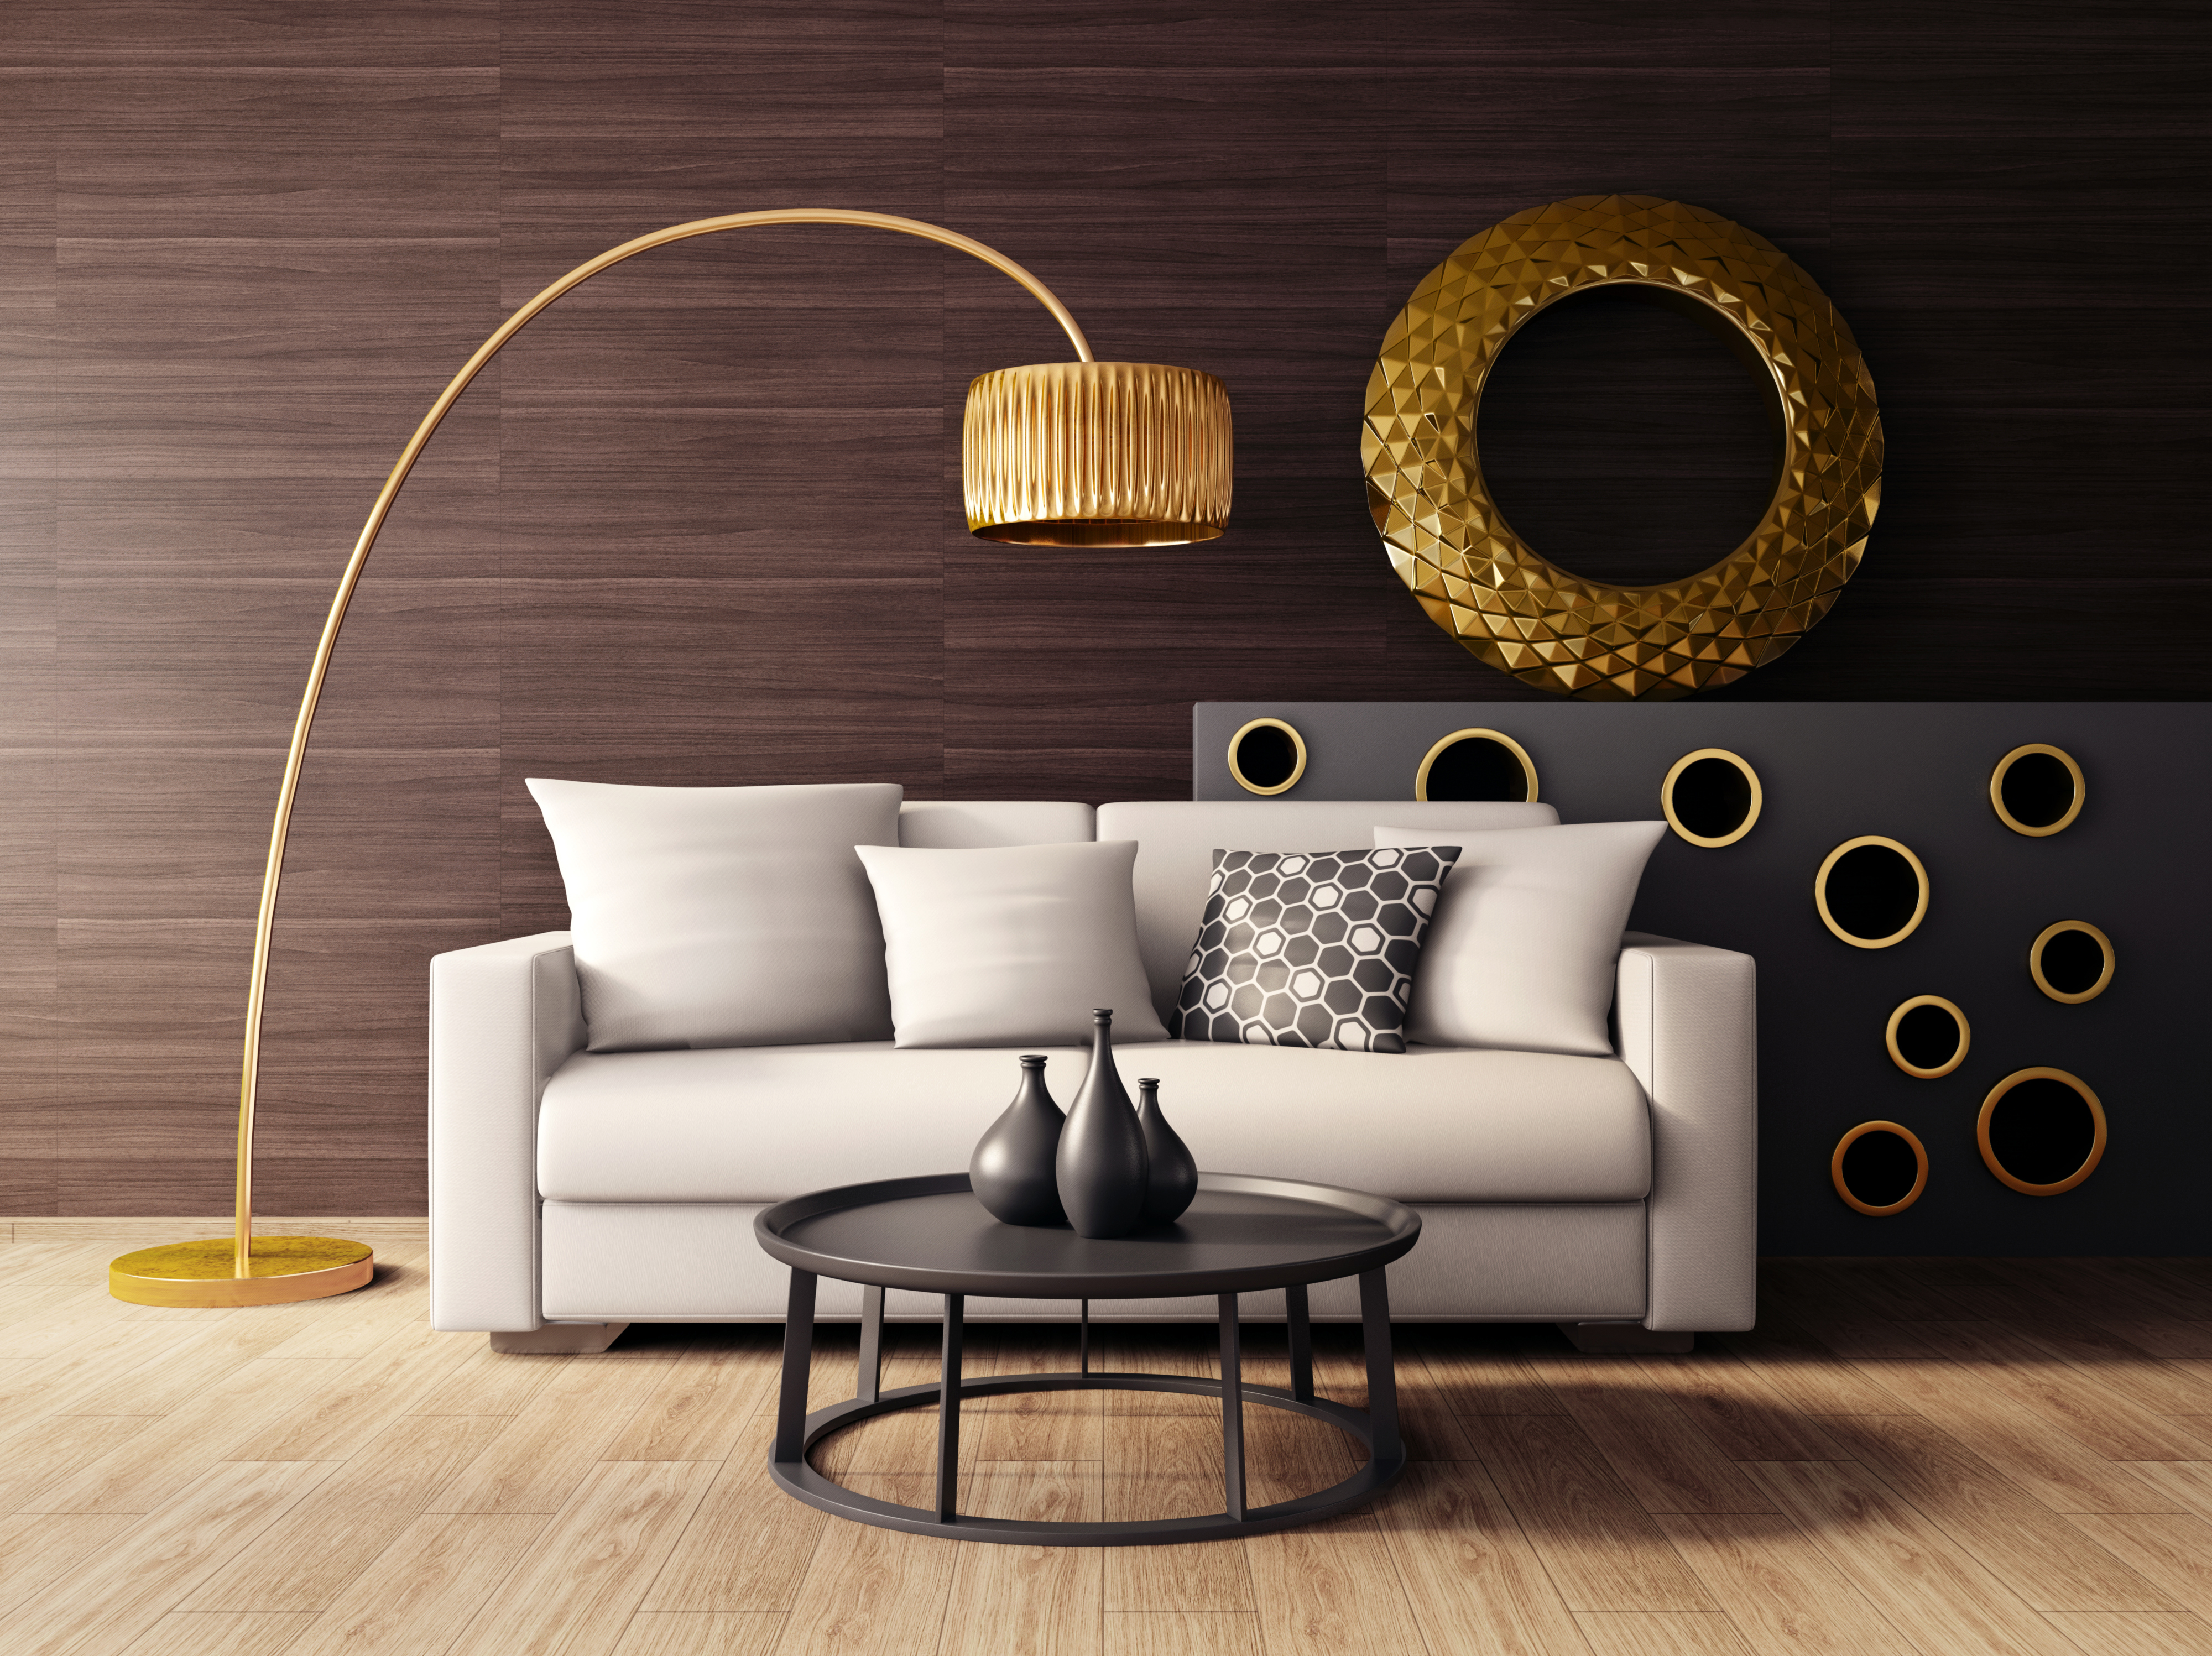 Tips for selecting modern furniture